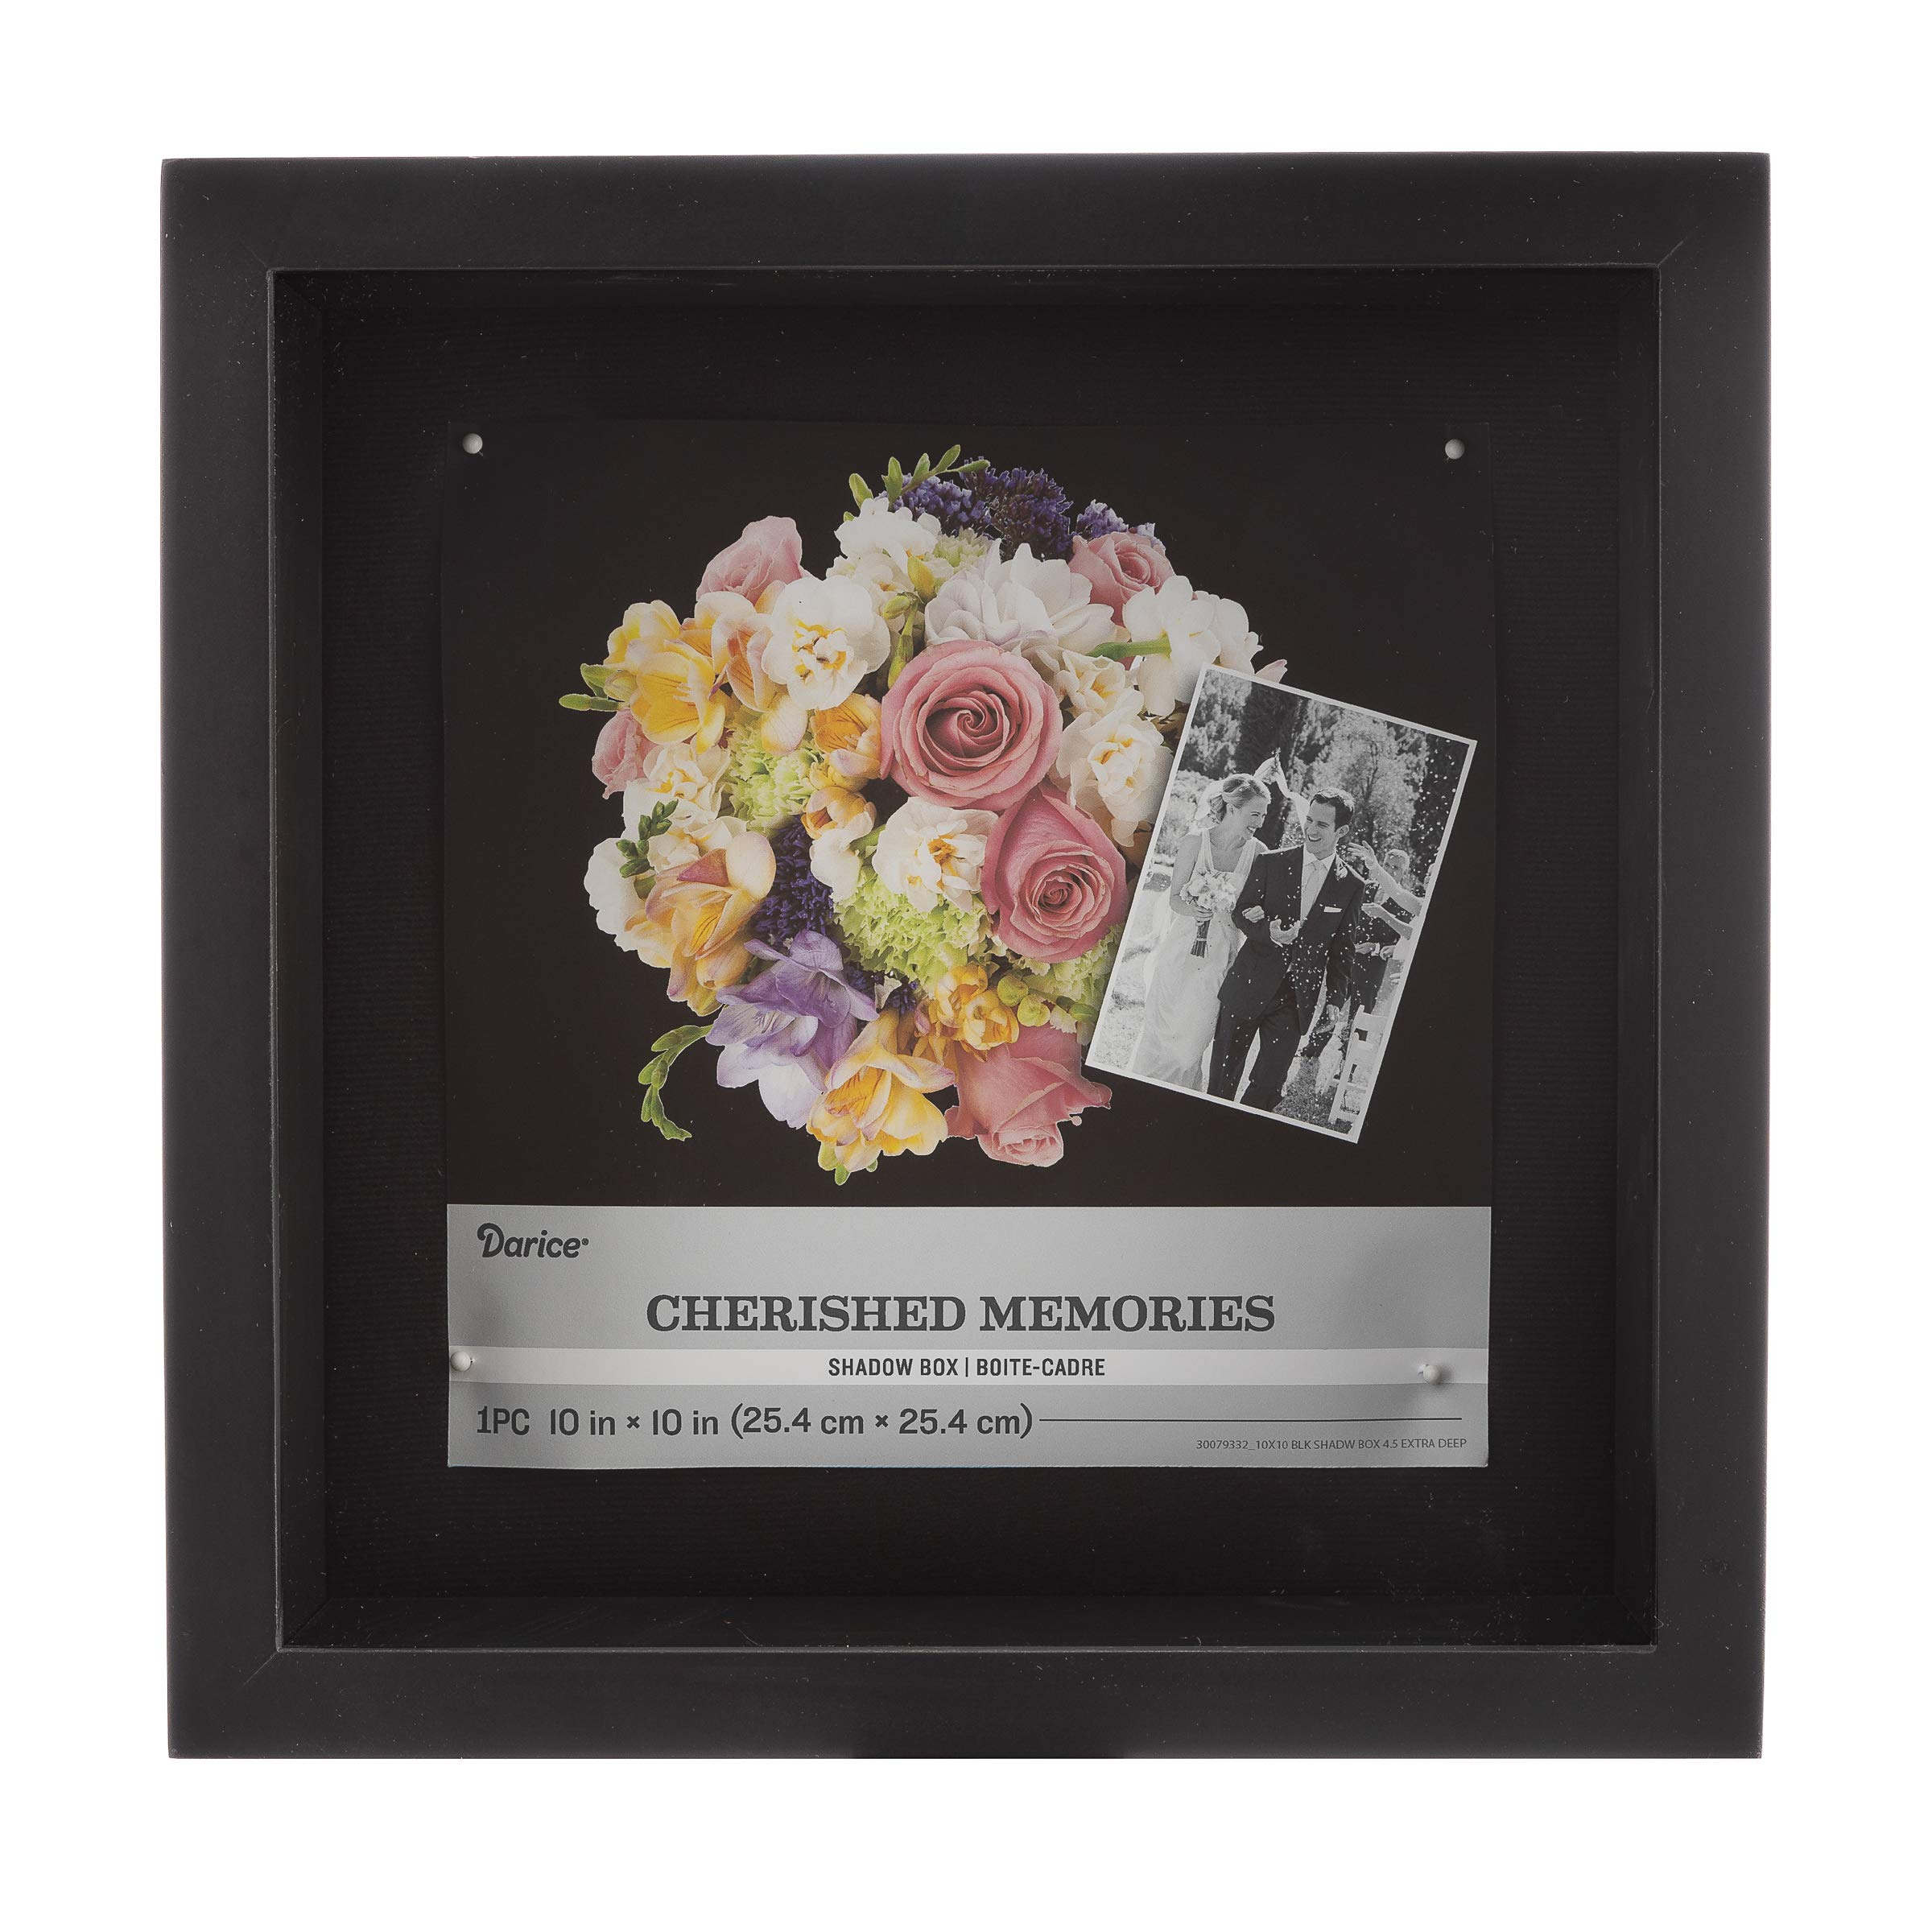 Darice Extra Deep Shadowbox: Black, 10 x 10 Inches by Darice